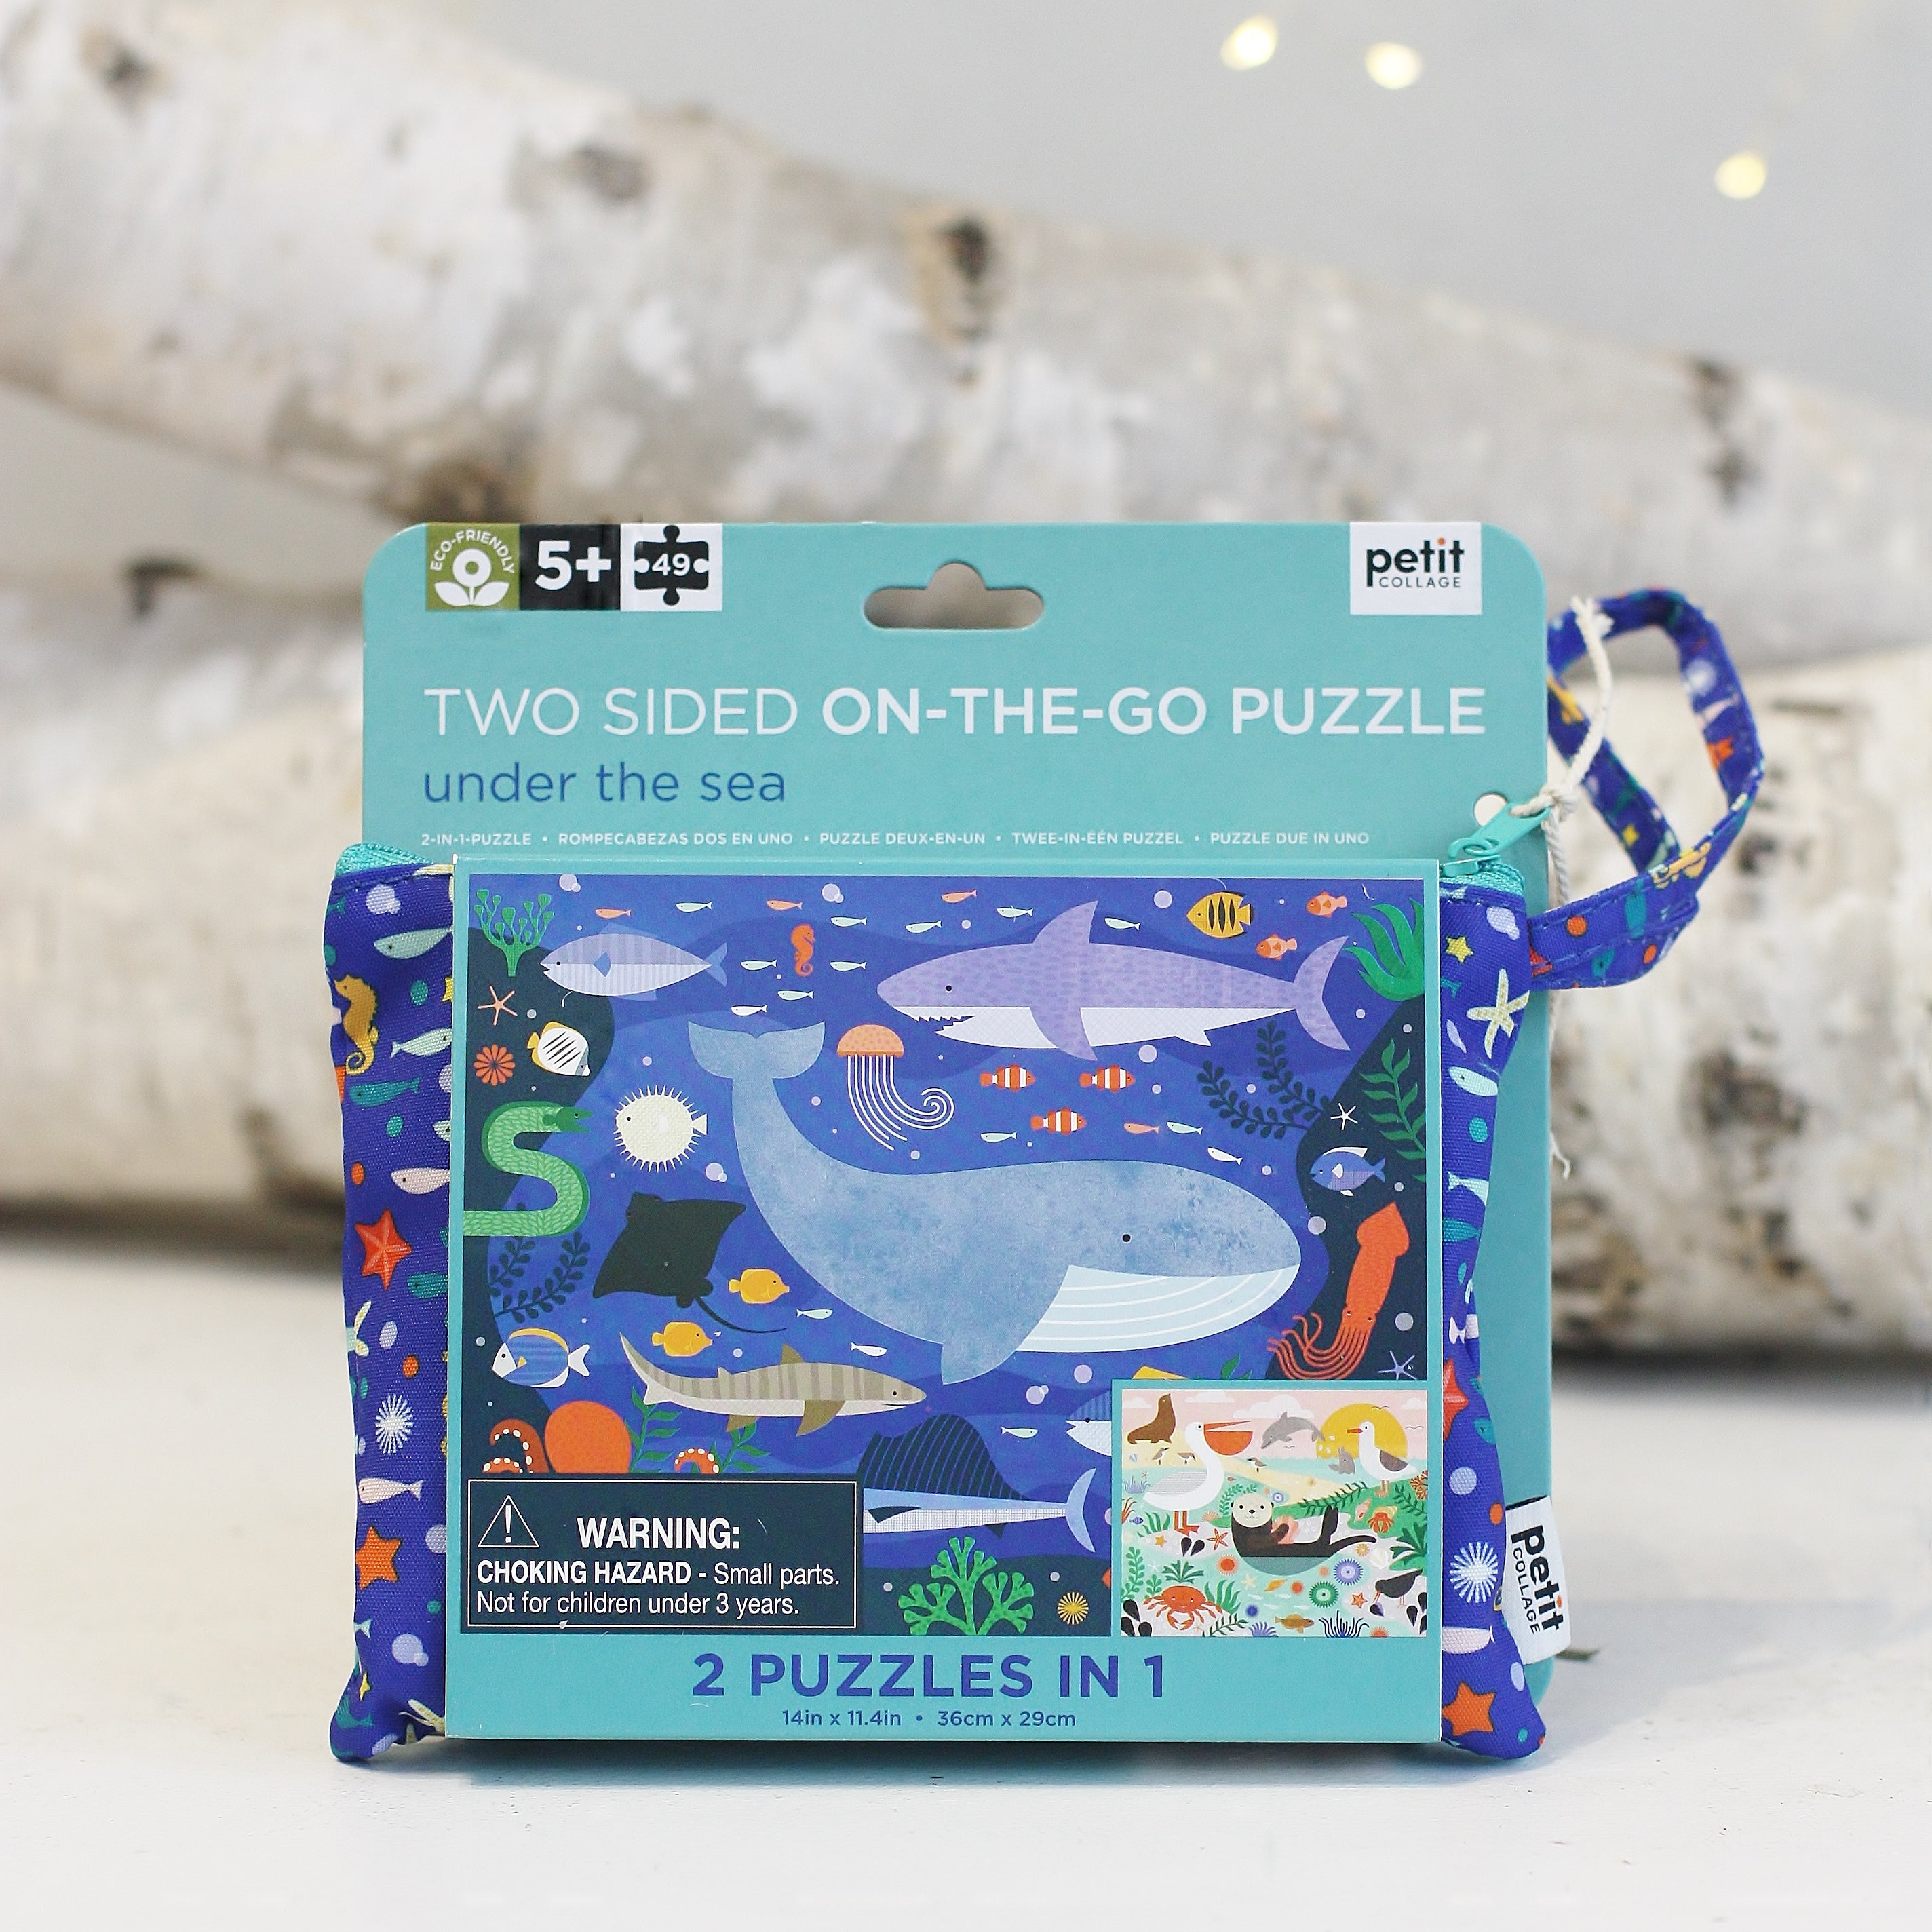 Two Sided On-The-Go Puzzles